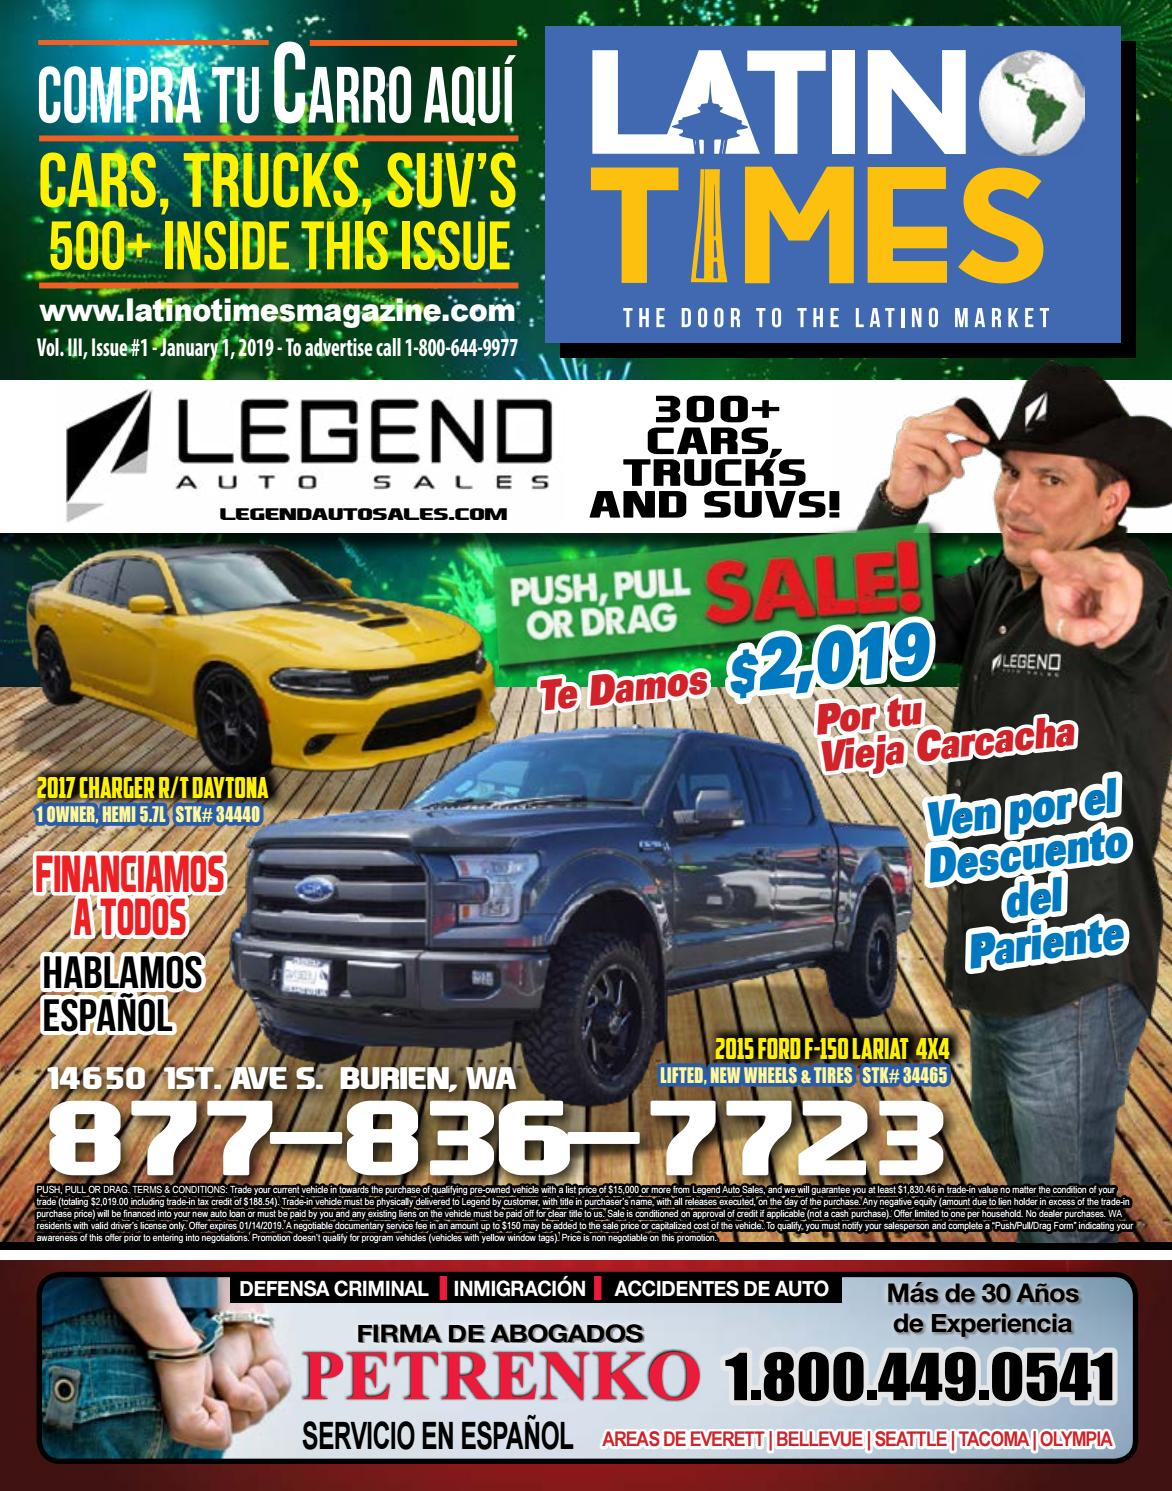 latino times magazine 1 january 1 2019 by latinotimes issuu issuu